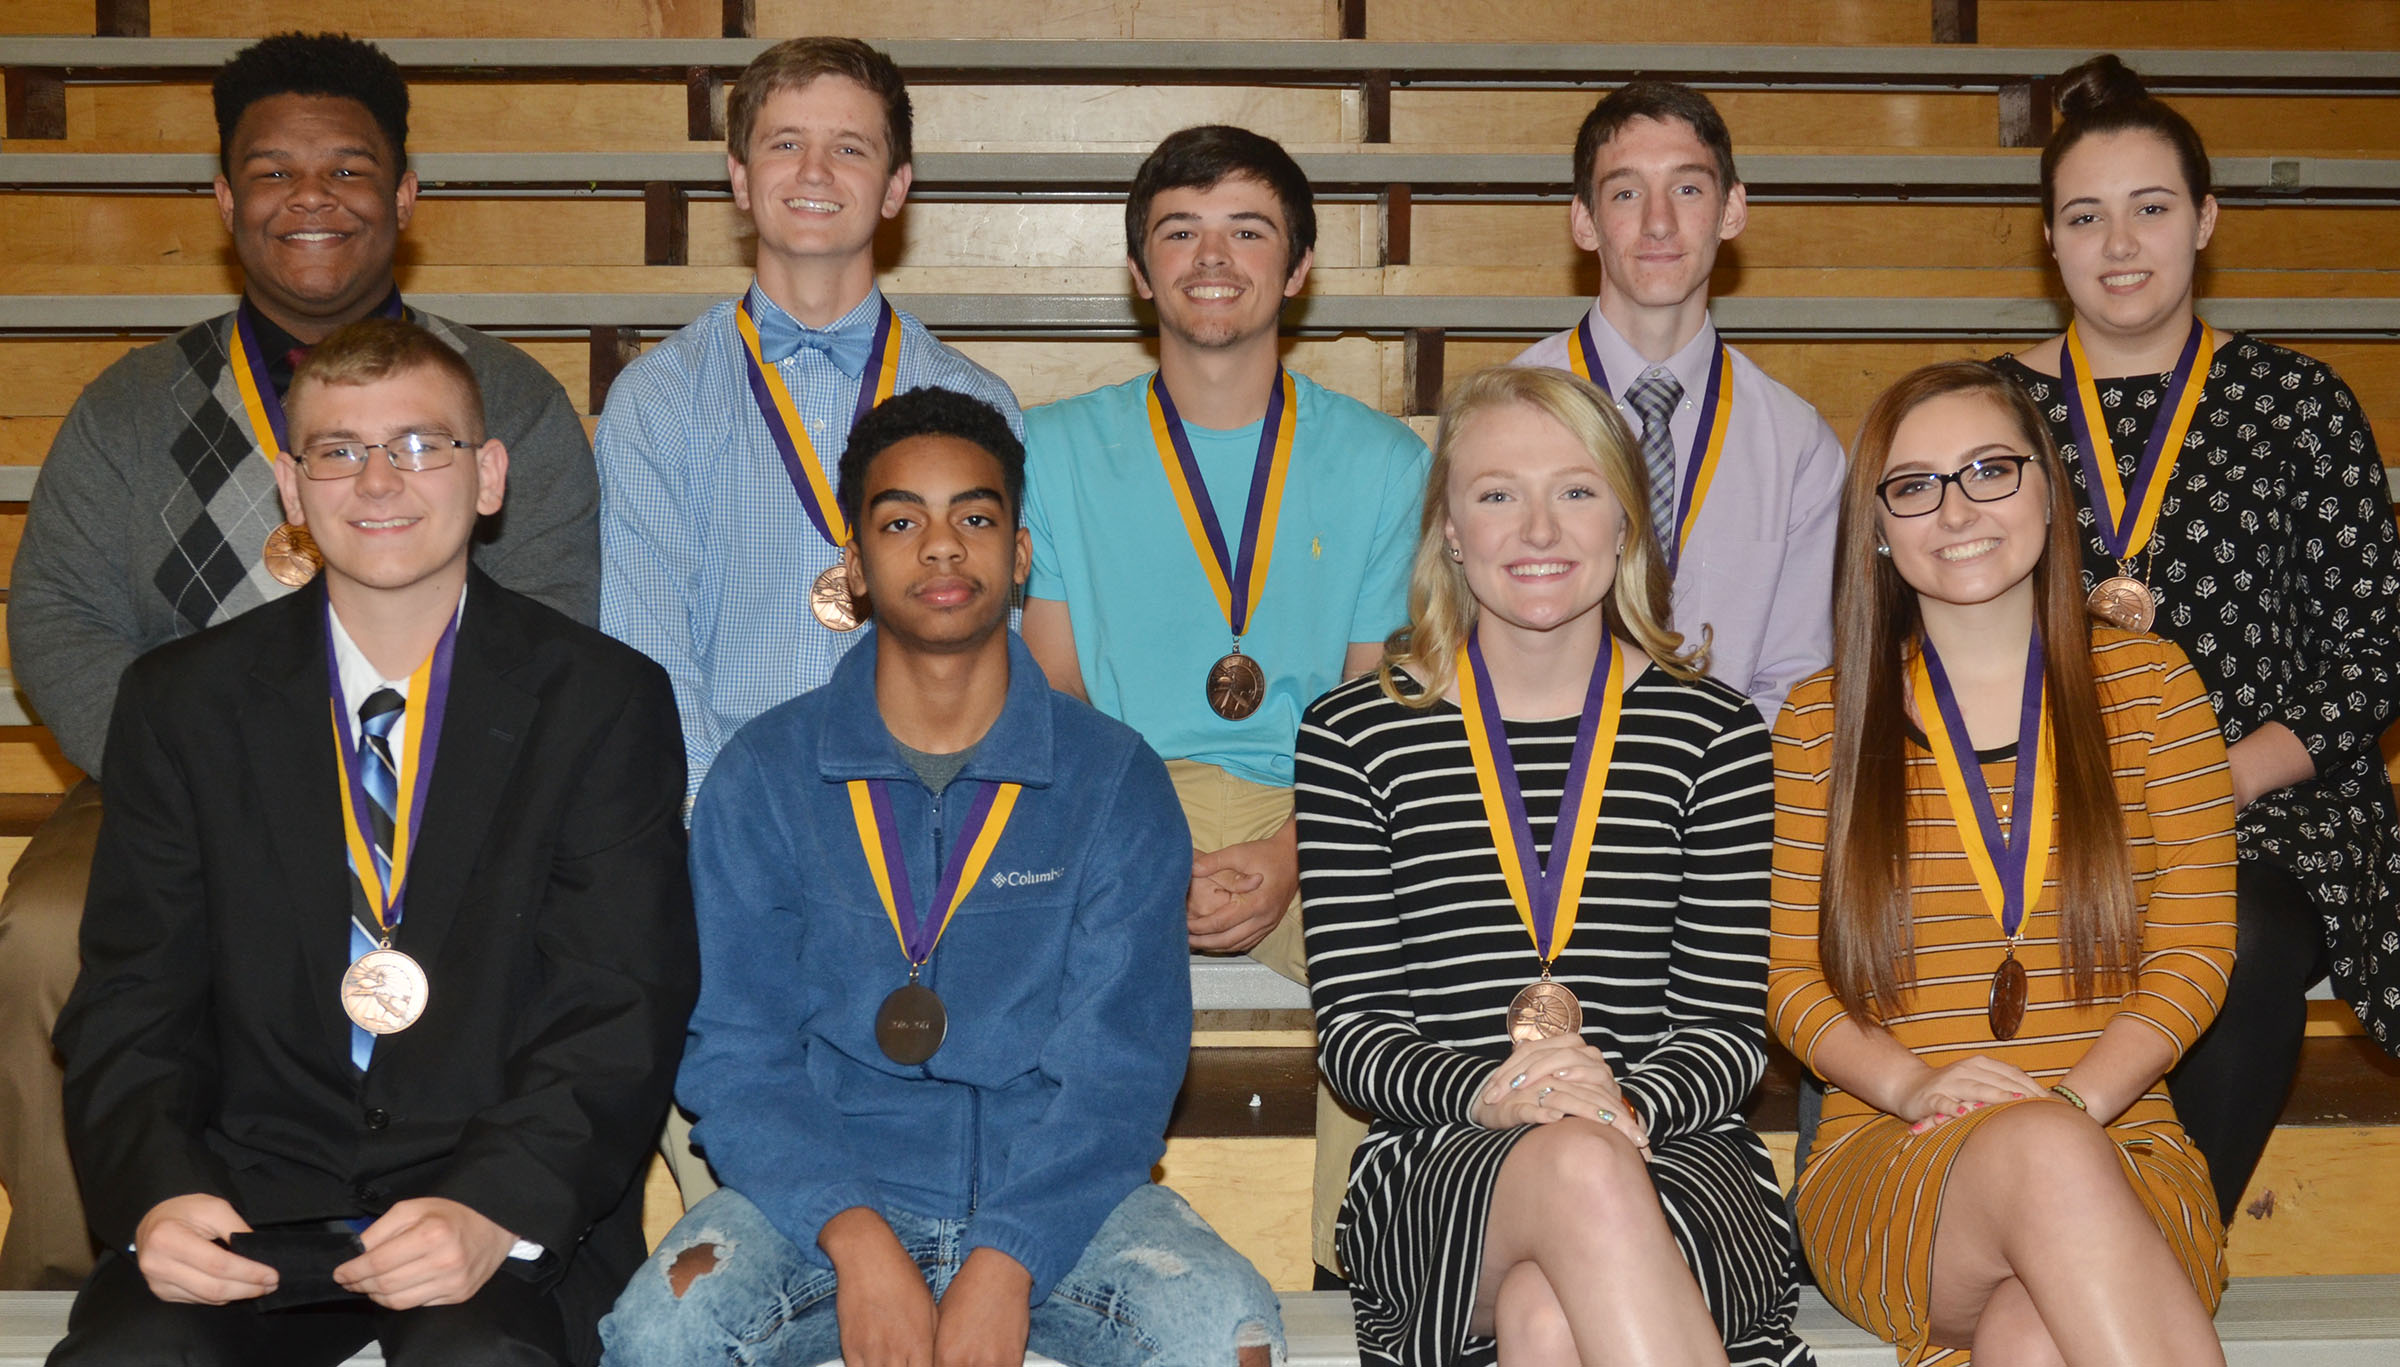 CHS sophomores honored at this year's Top 10 percent banquet are, from left, front, Brandon Greer, Davon Cecil, Abbie Dicken and Reagan Knight. Back, Jeremiah Jackson, Myles Murrell, Ryan Kearney, Ian McAninch and Elizabeth Sullivan.